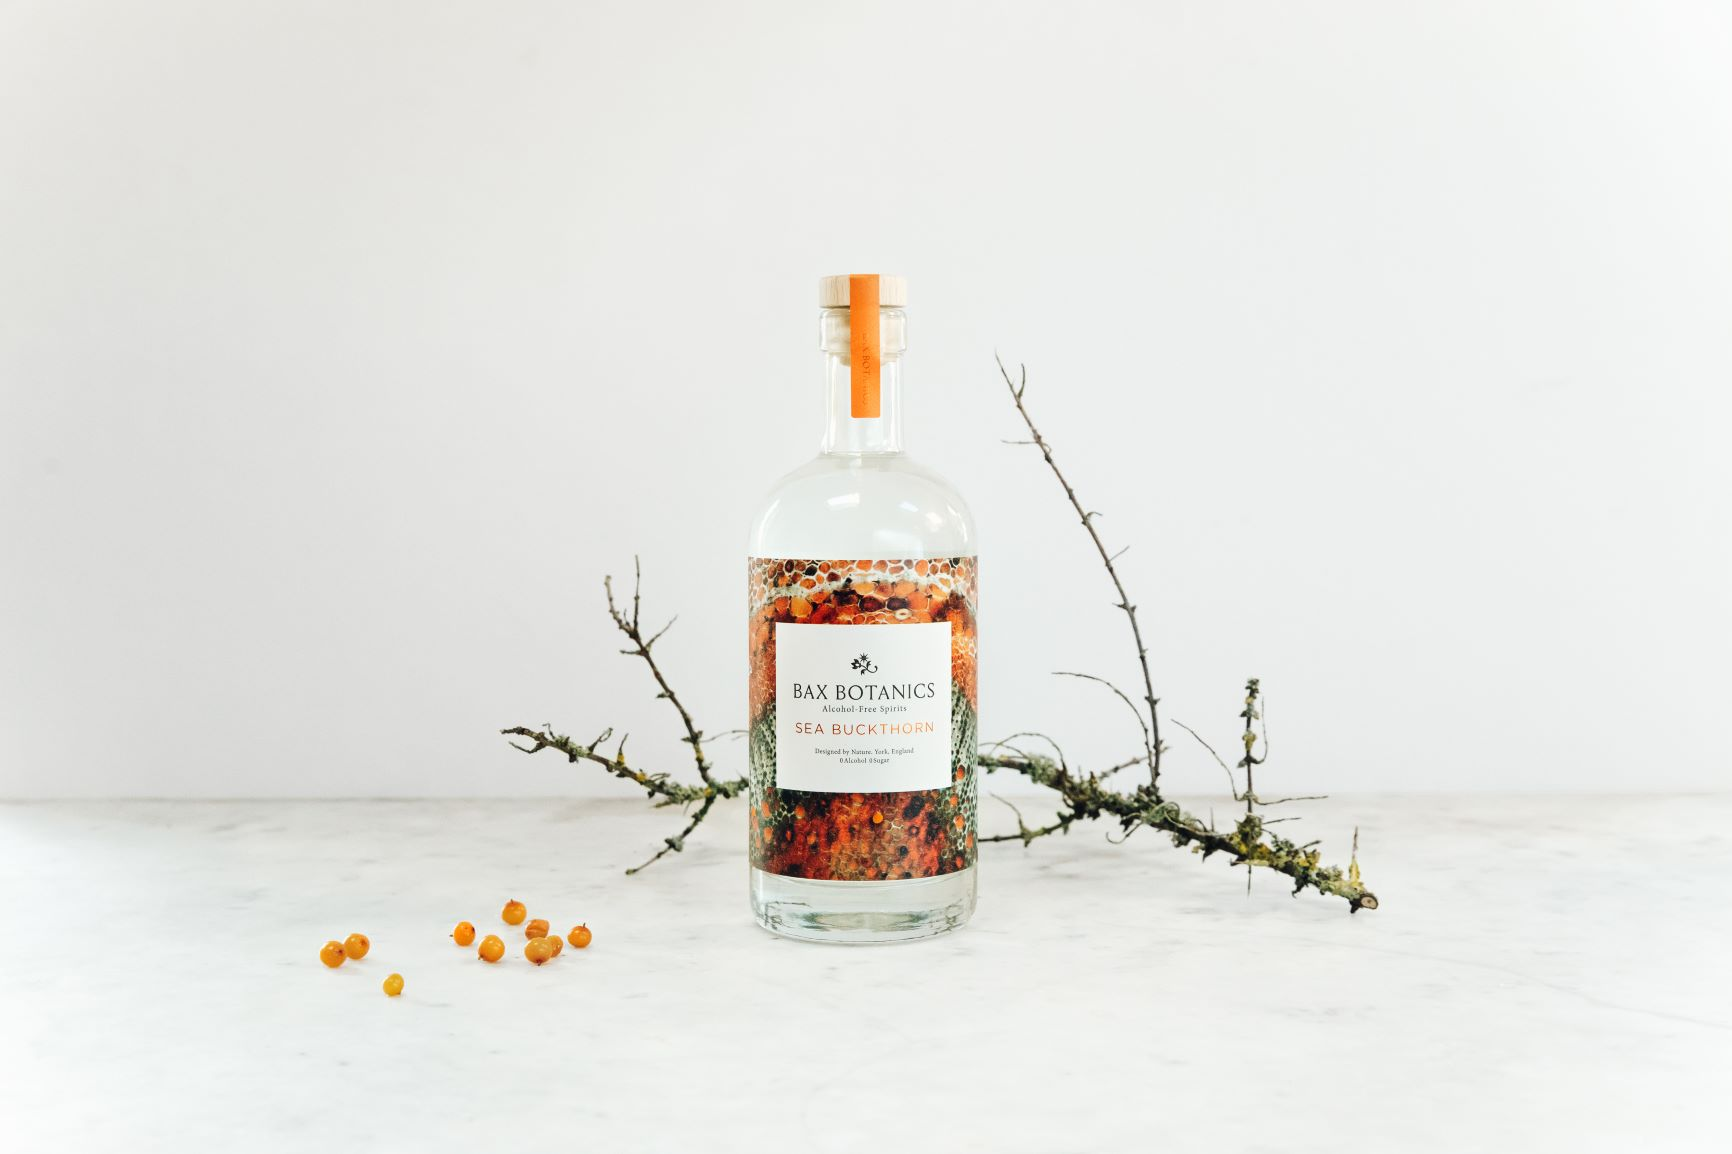 Bax Botanics - A New Player in The Alcohol-Free Spirits Market